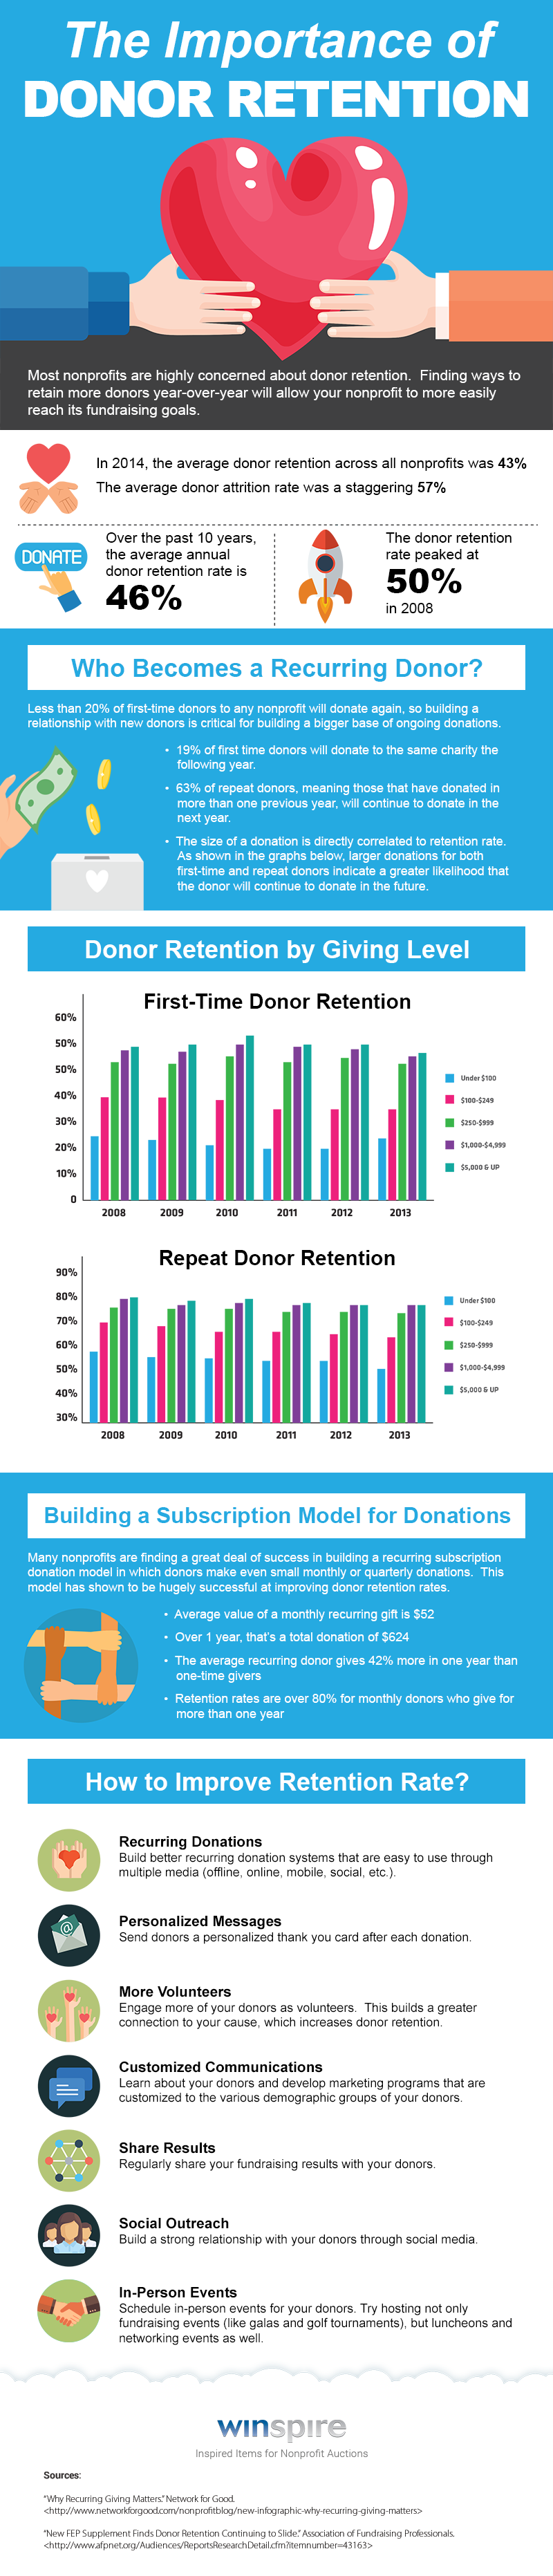 The_Importance_of_Donor_Retention-Infographic.png